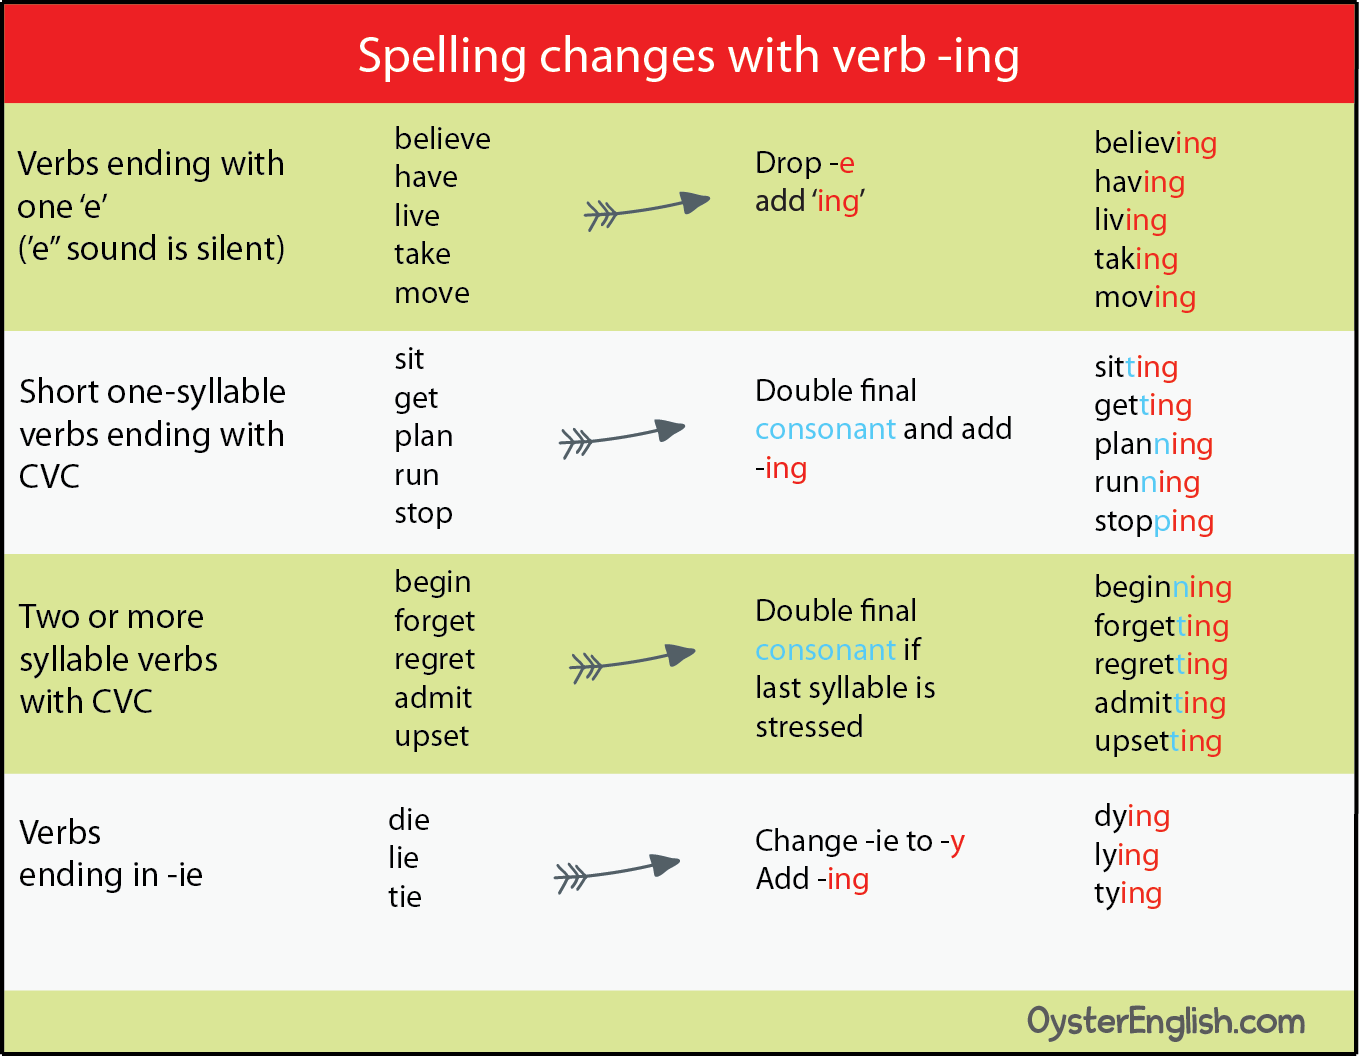 A chart showing the spelling changes shown on the page